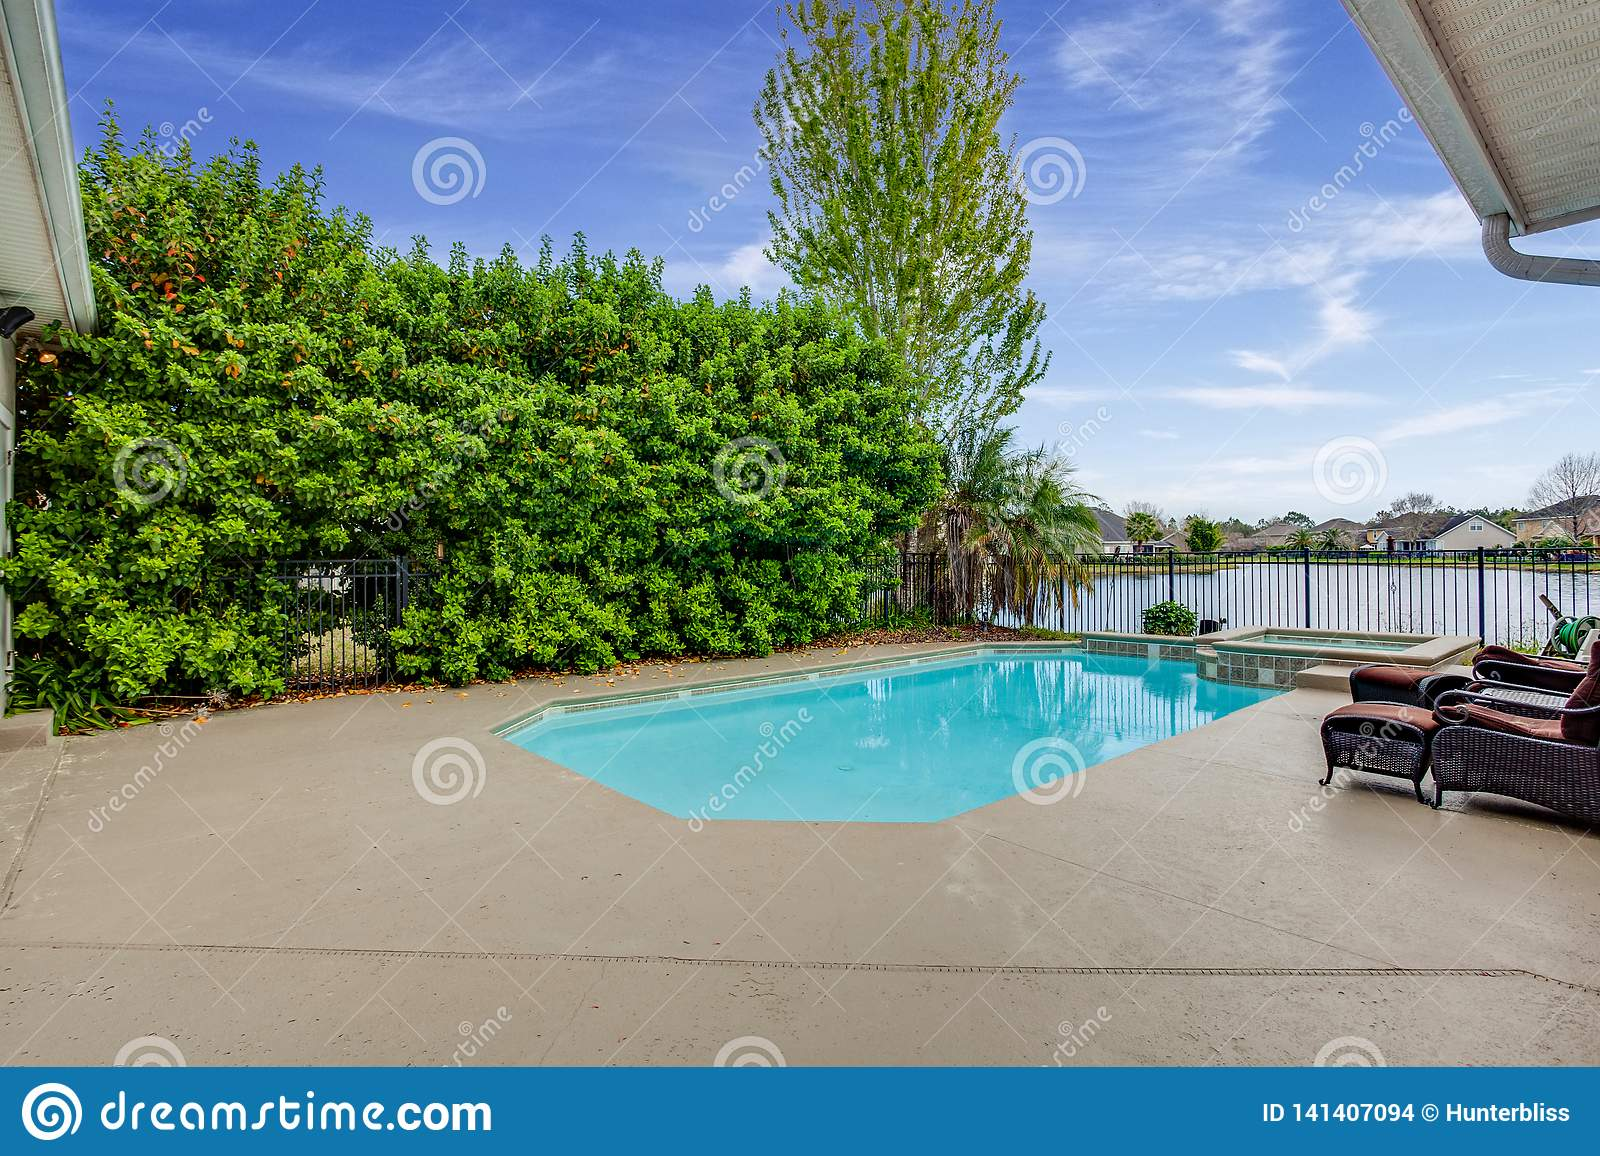 Outdoor Swimming Pool In Ground Concrete Back Yard ...